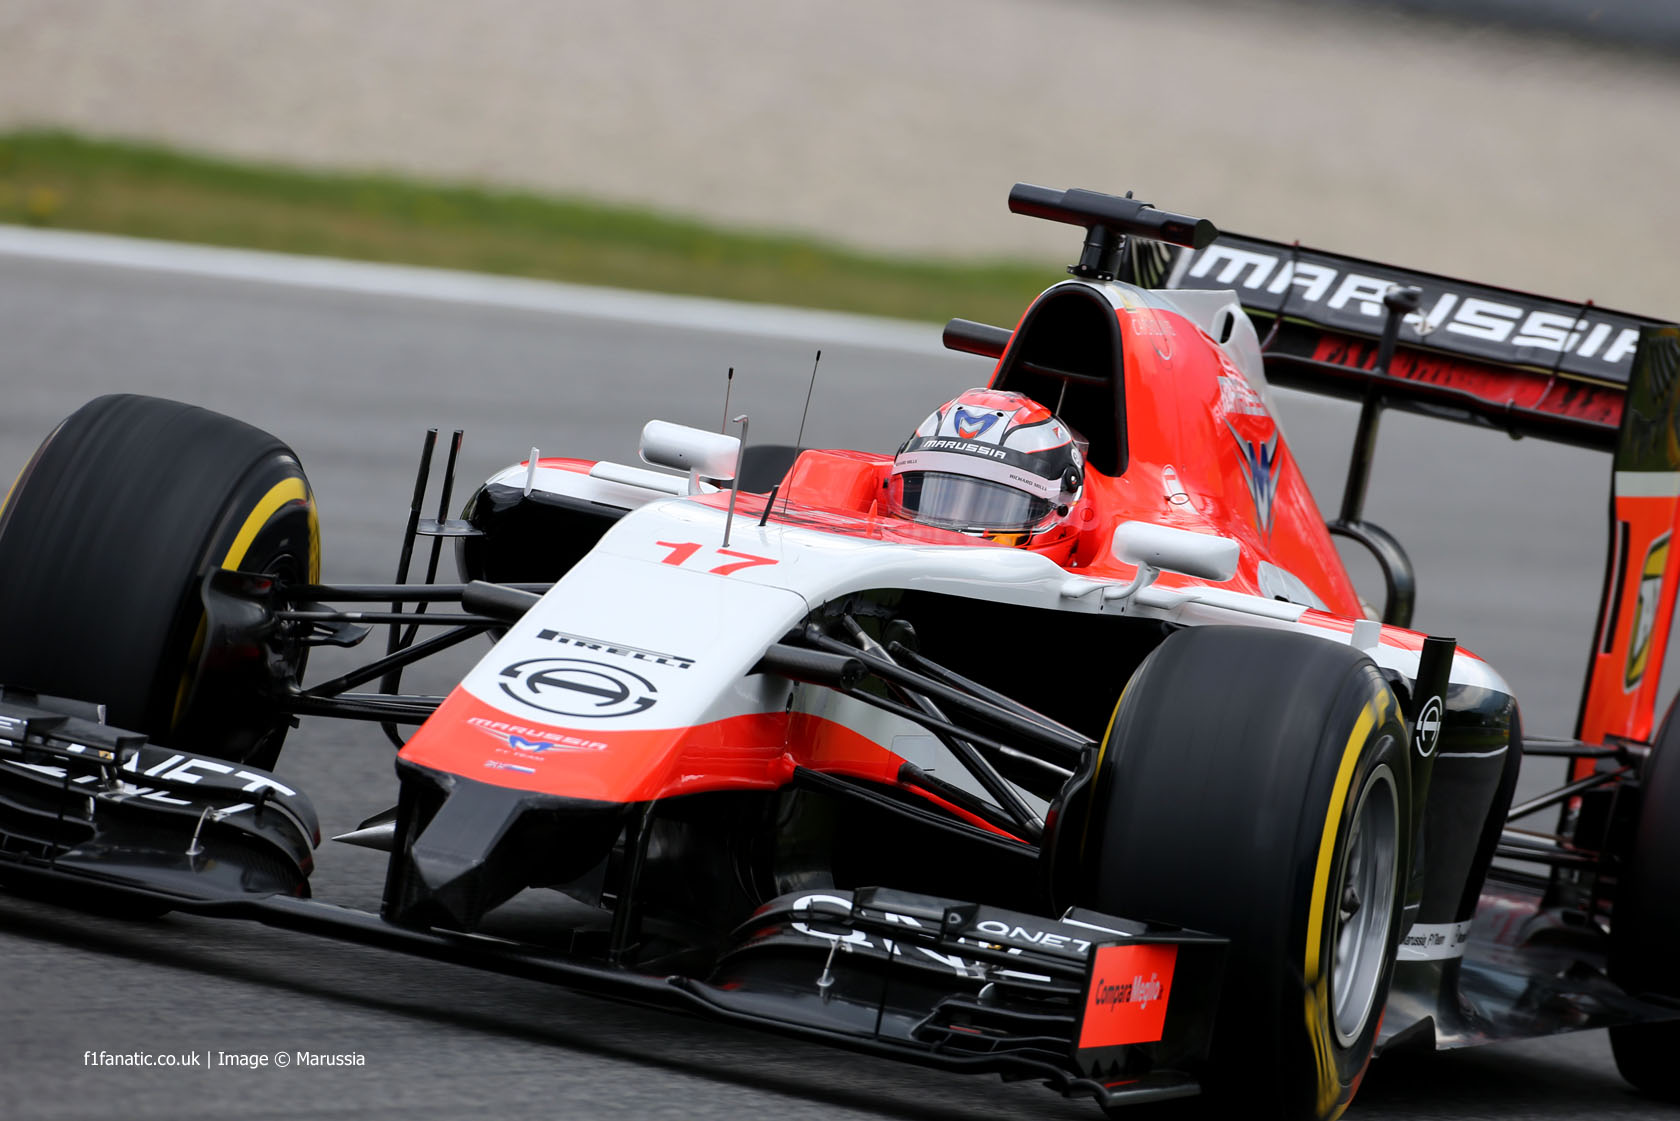 Jules Bianchi, Marussia, Red Bull Ring, 2014